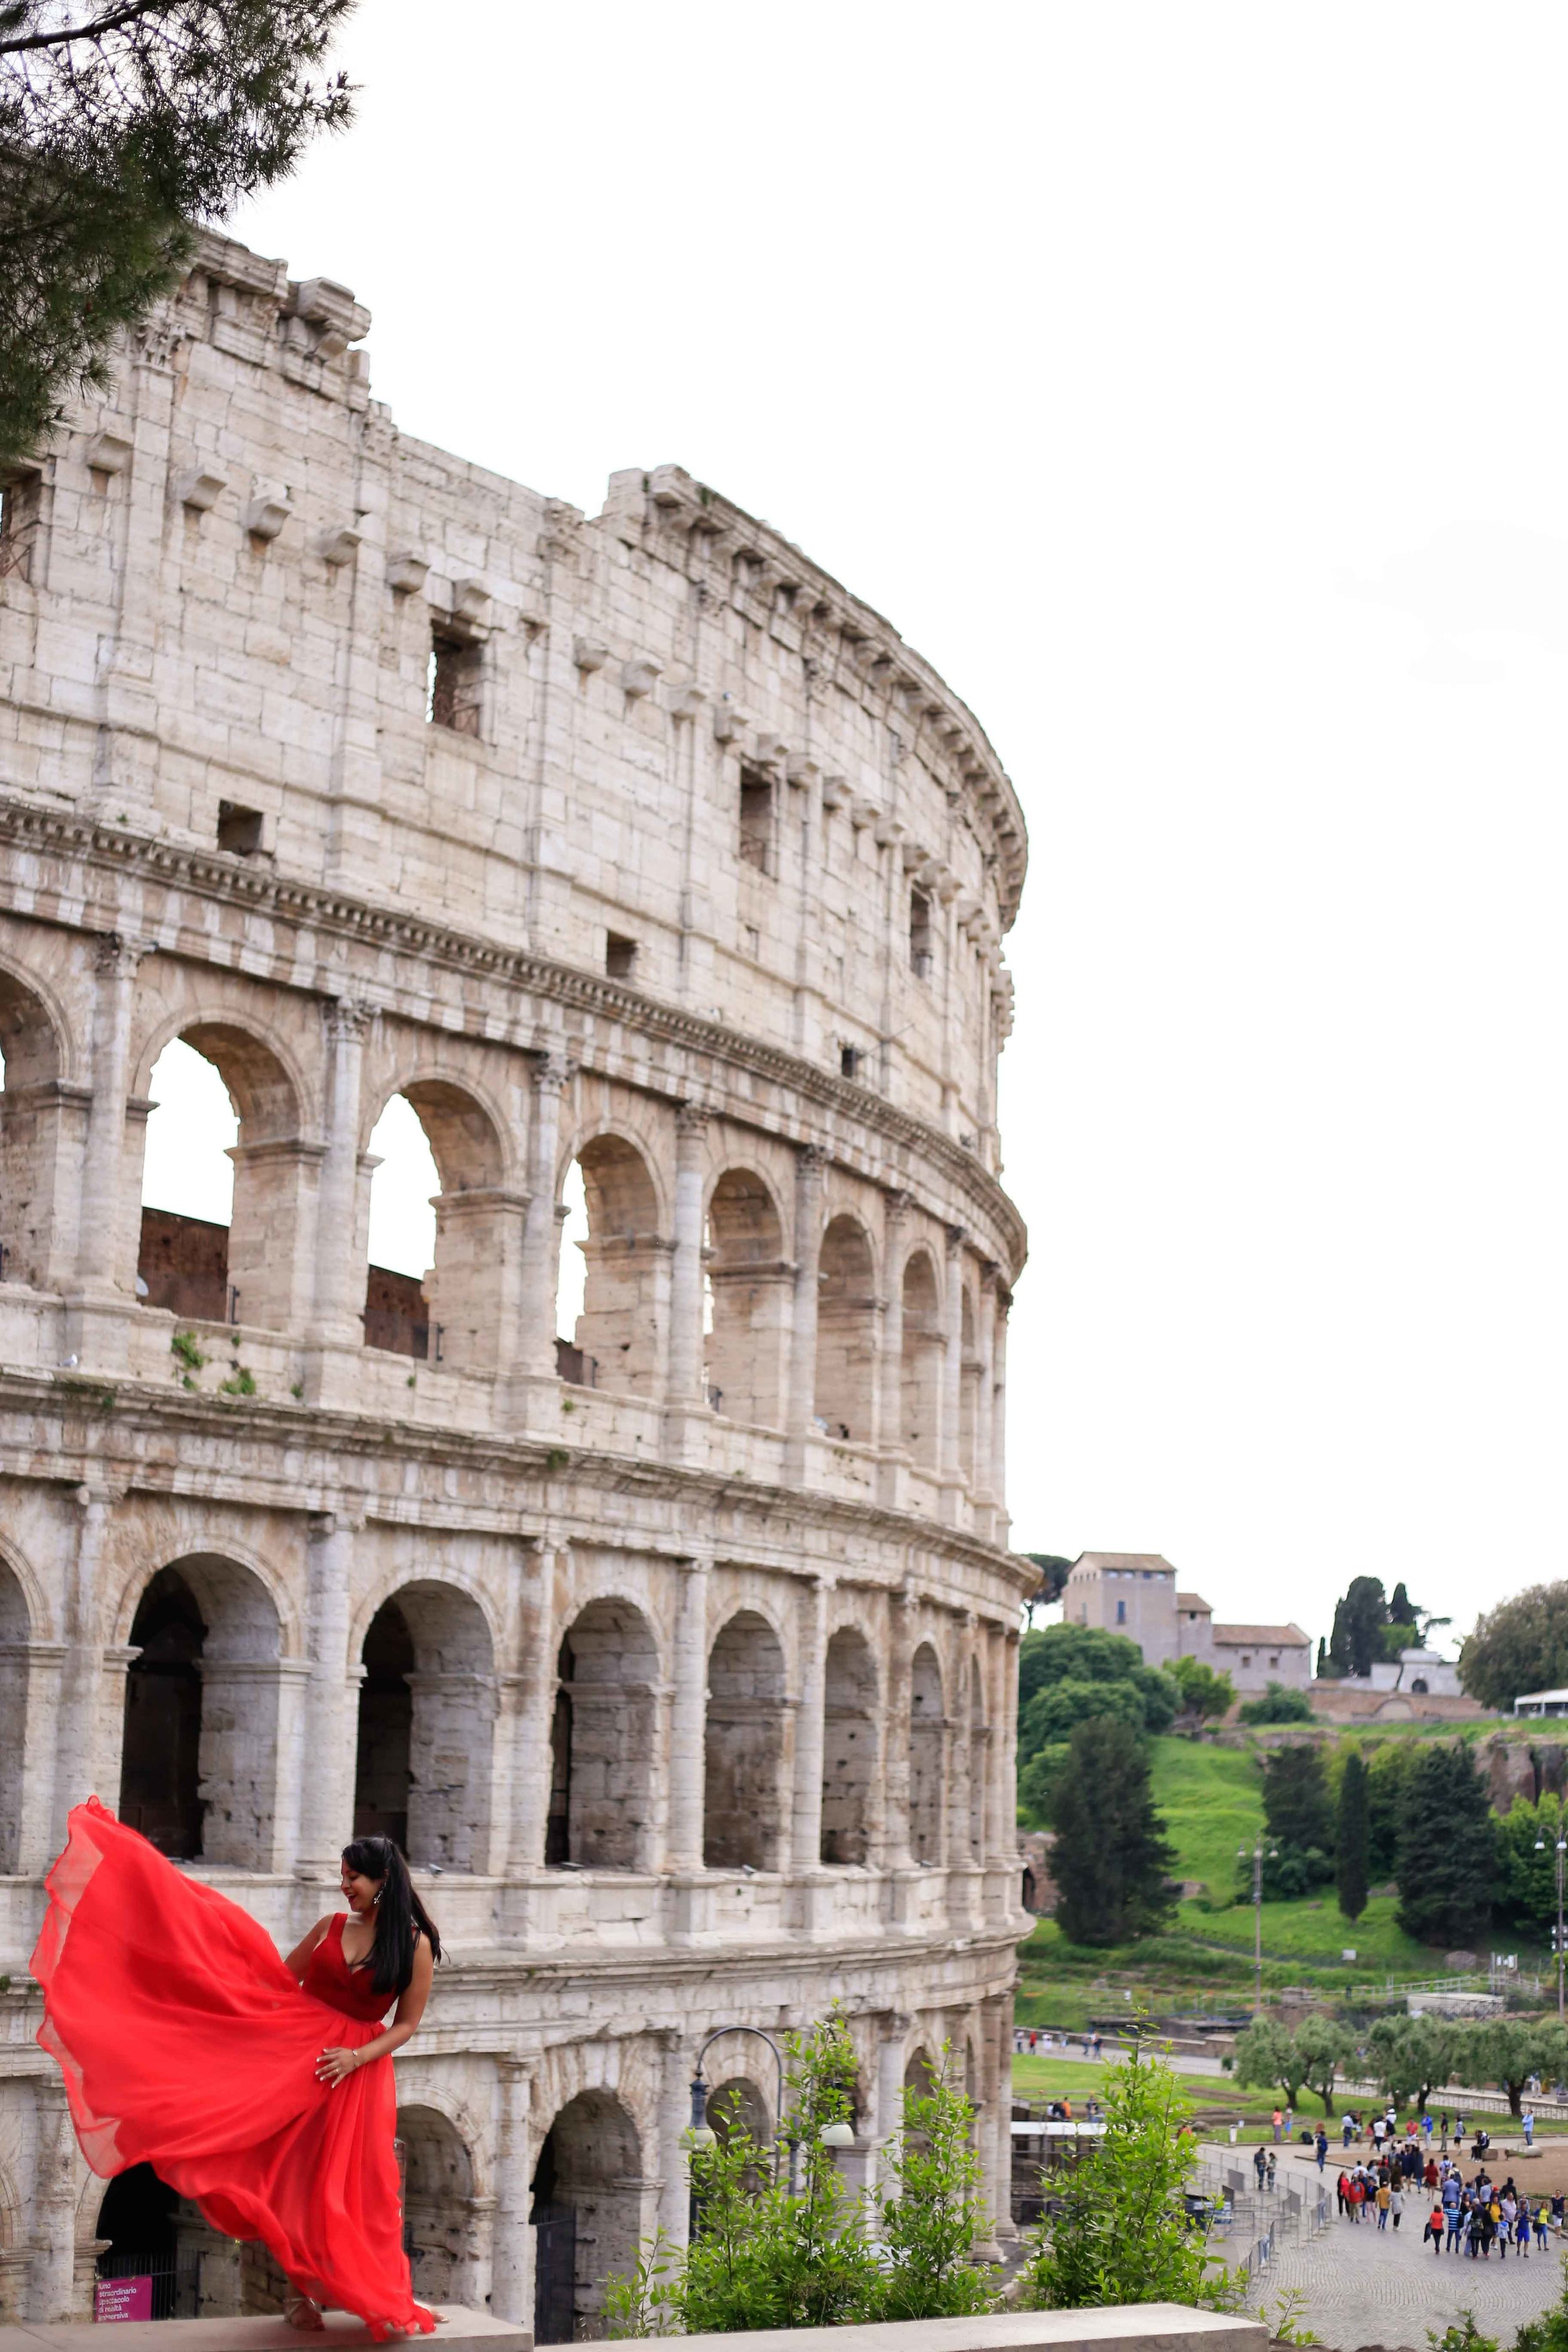 Colosseum Colosseo Itinerary Guide Italy Roadtrip Charisma Shah